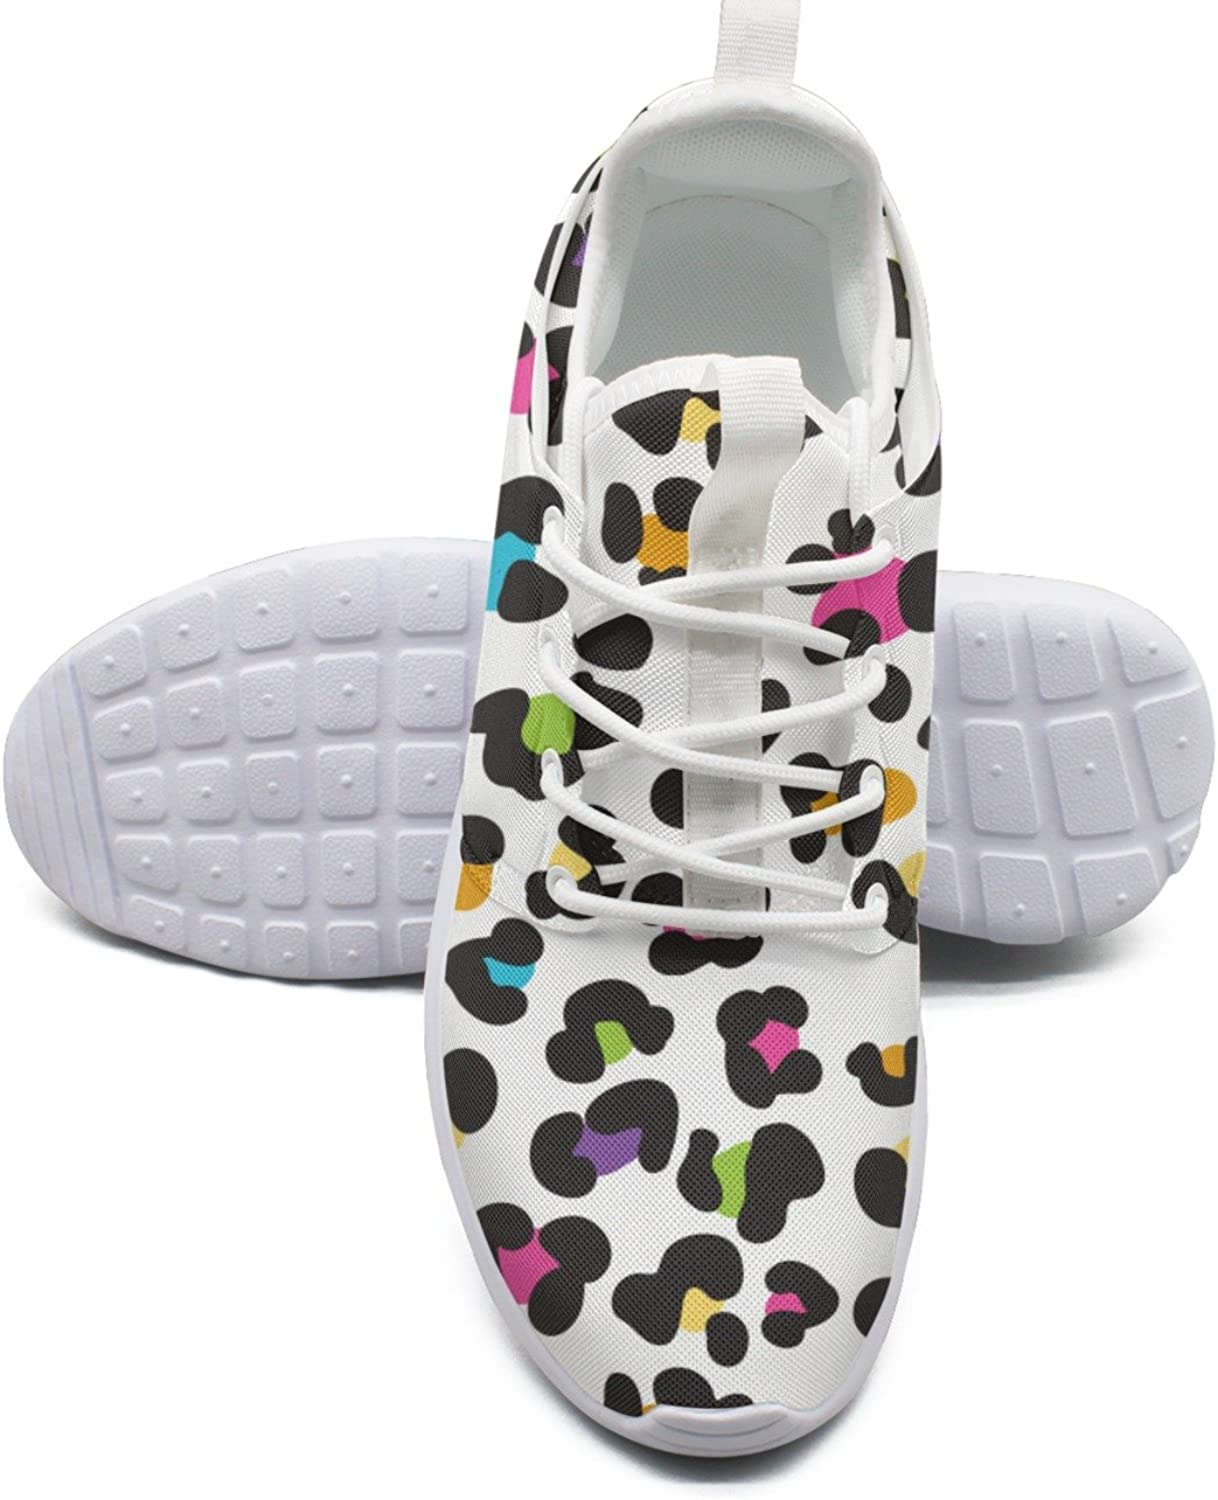 Women's Fashion Lightweight Sneakers shoes colorful Cheetah Leopard Simple Running shoes